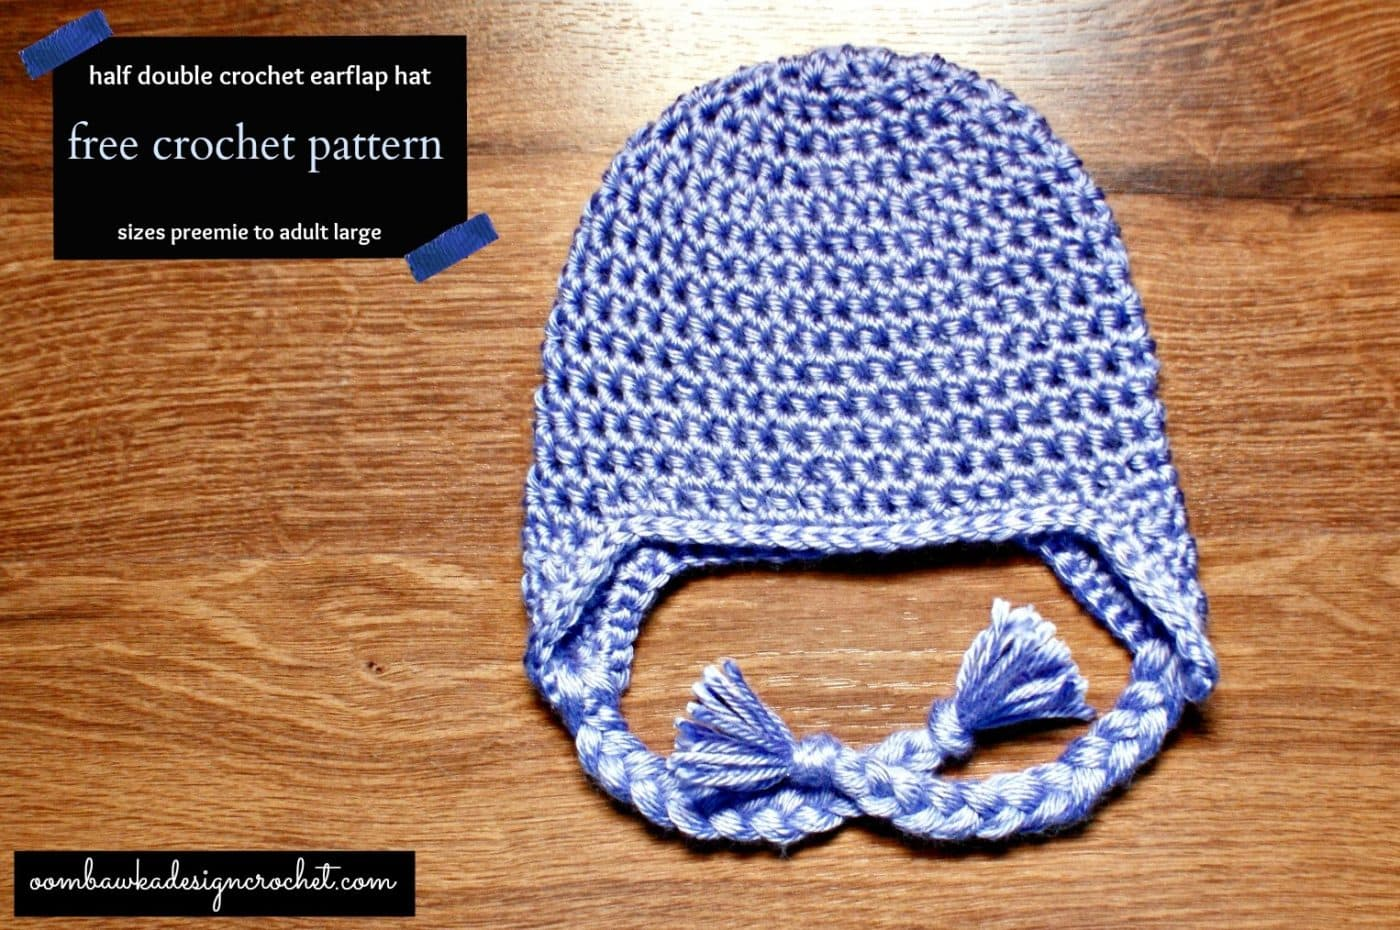 Crochet Earflap Hat : Half Double Crochet Earflap Hat Pattern